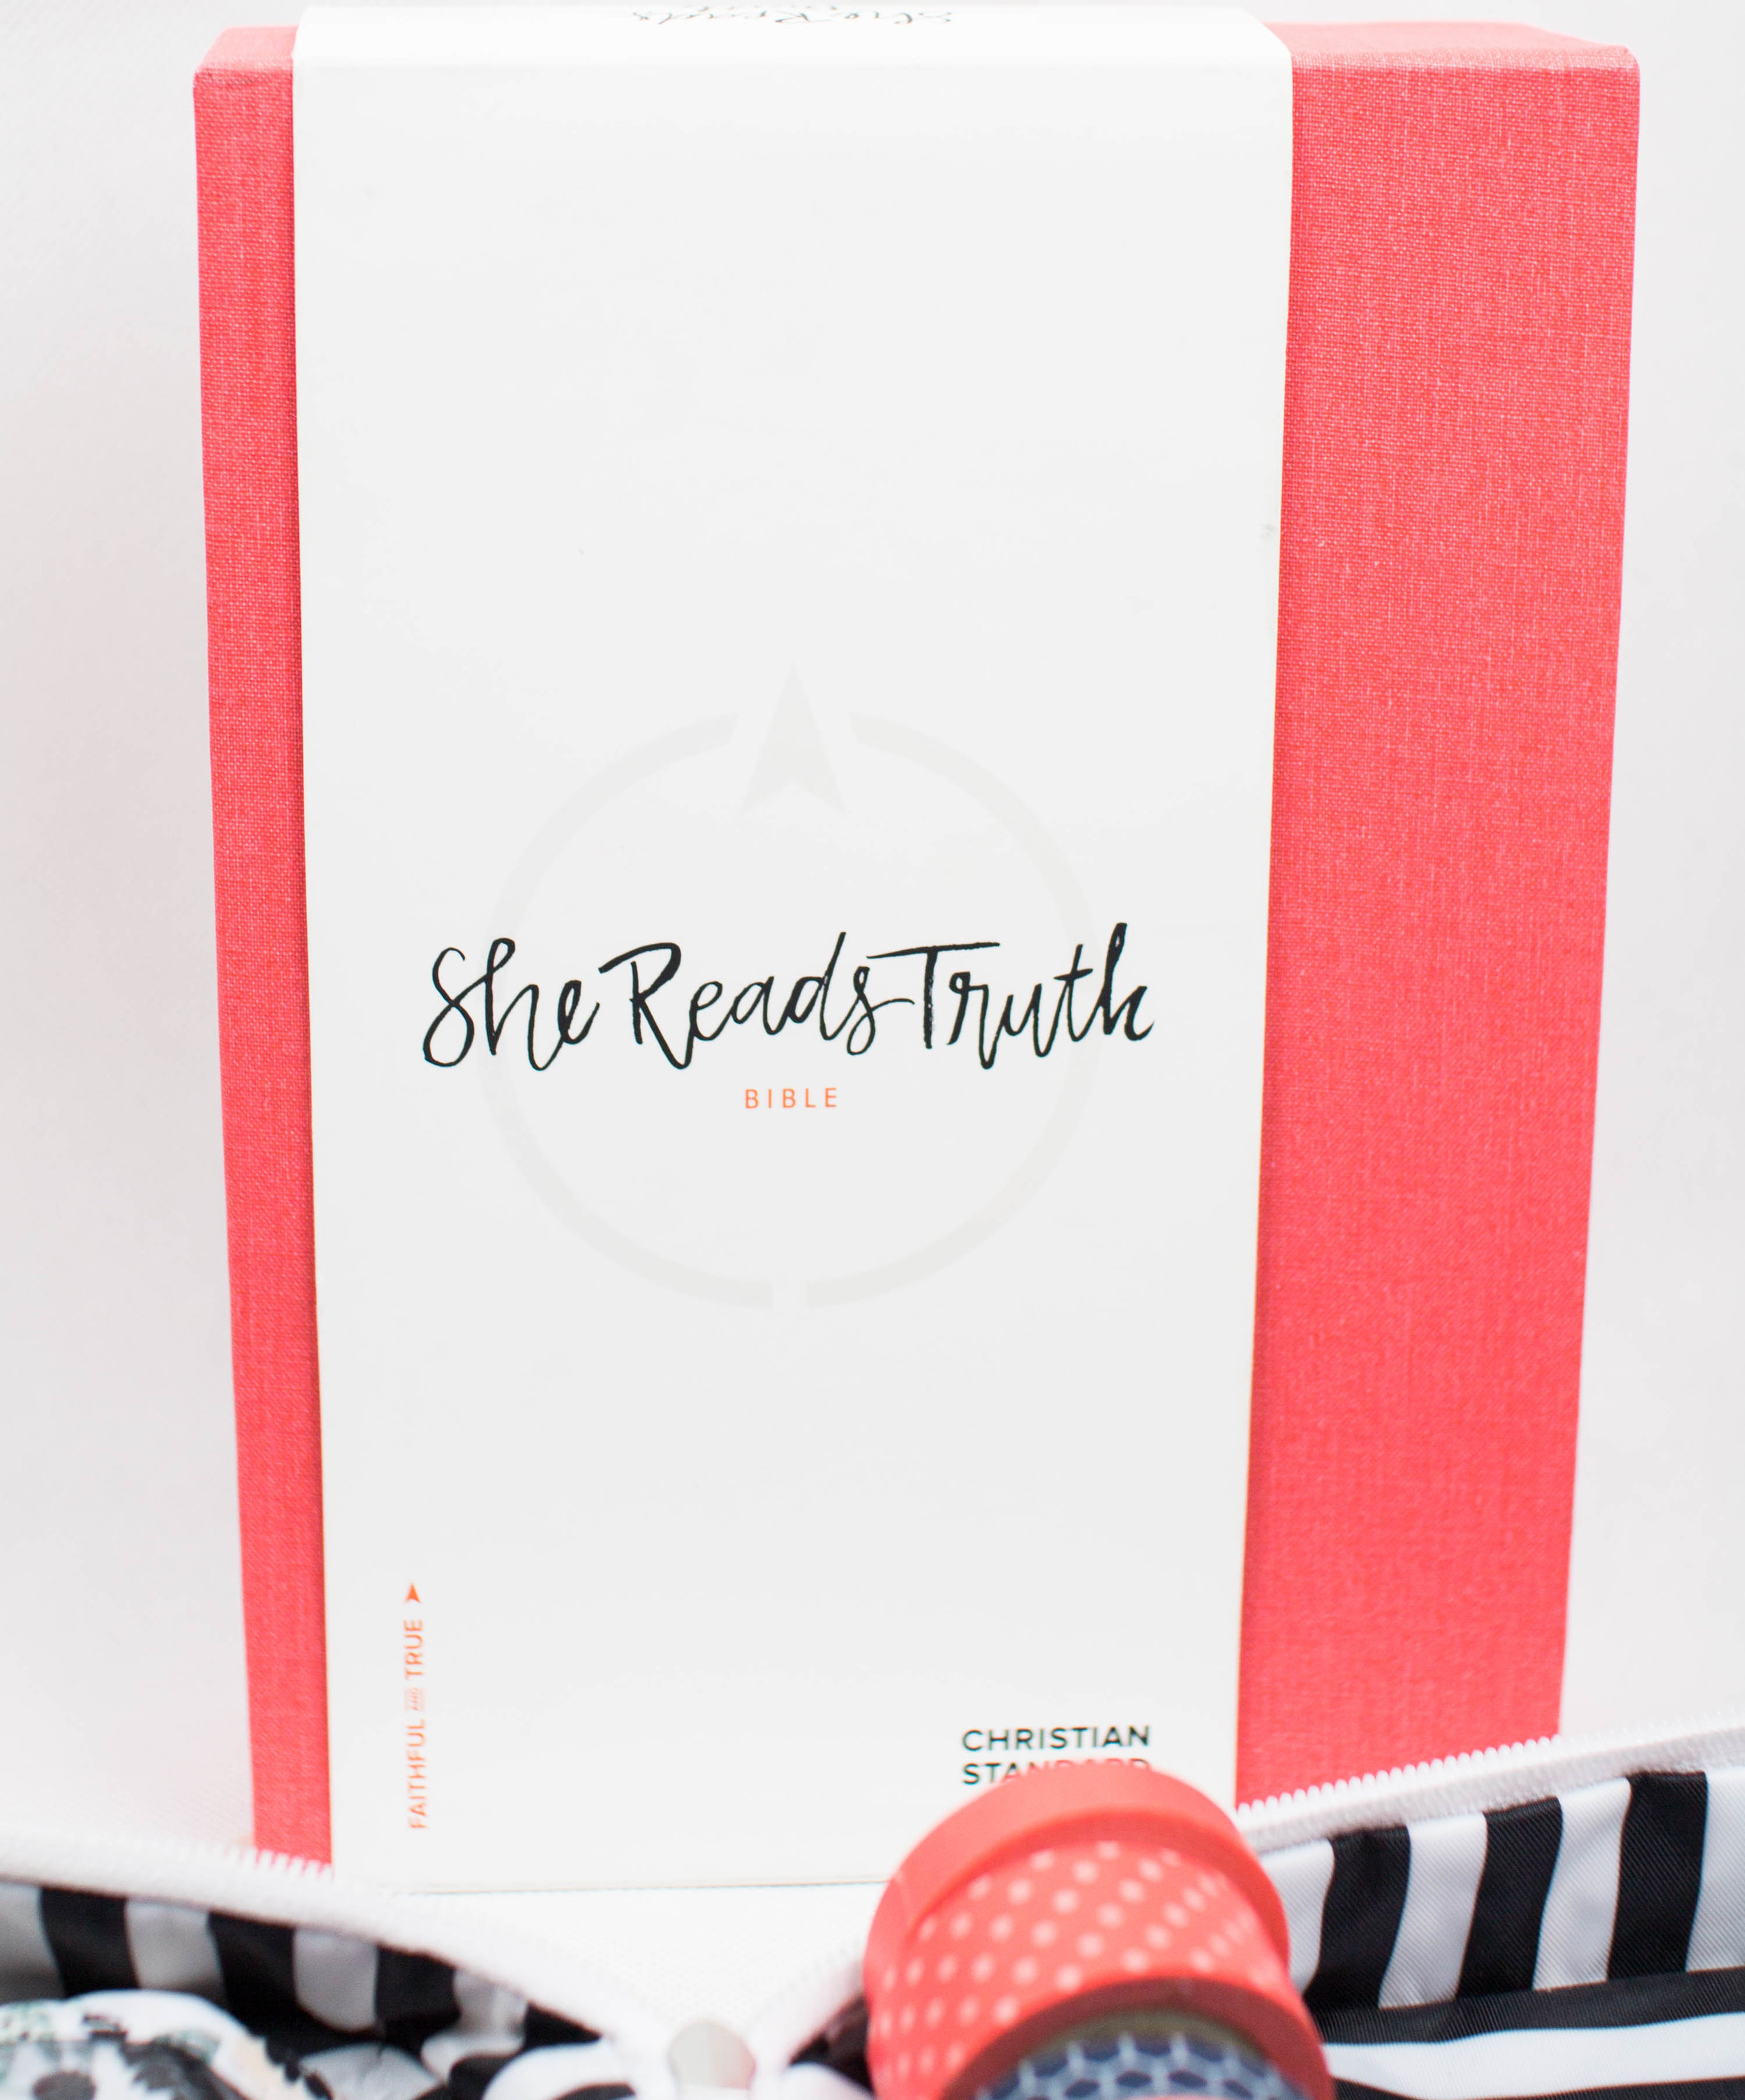 She Reads Truth Bible CSB